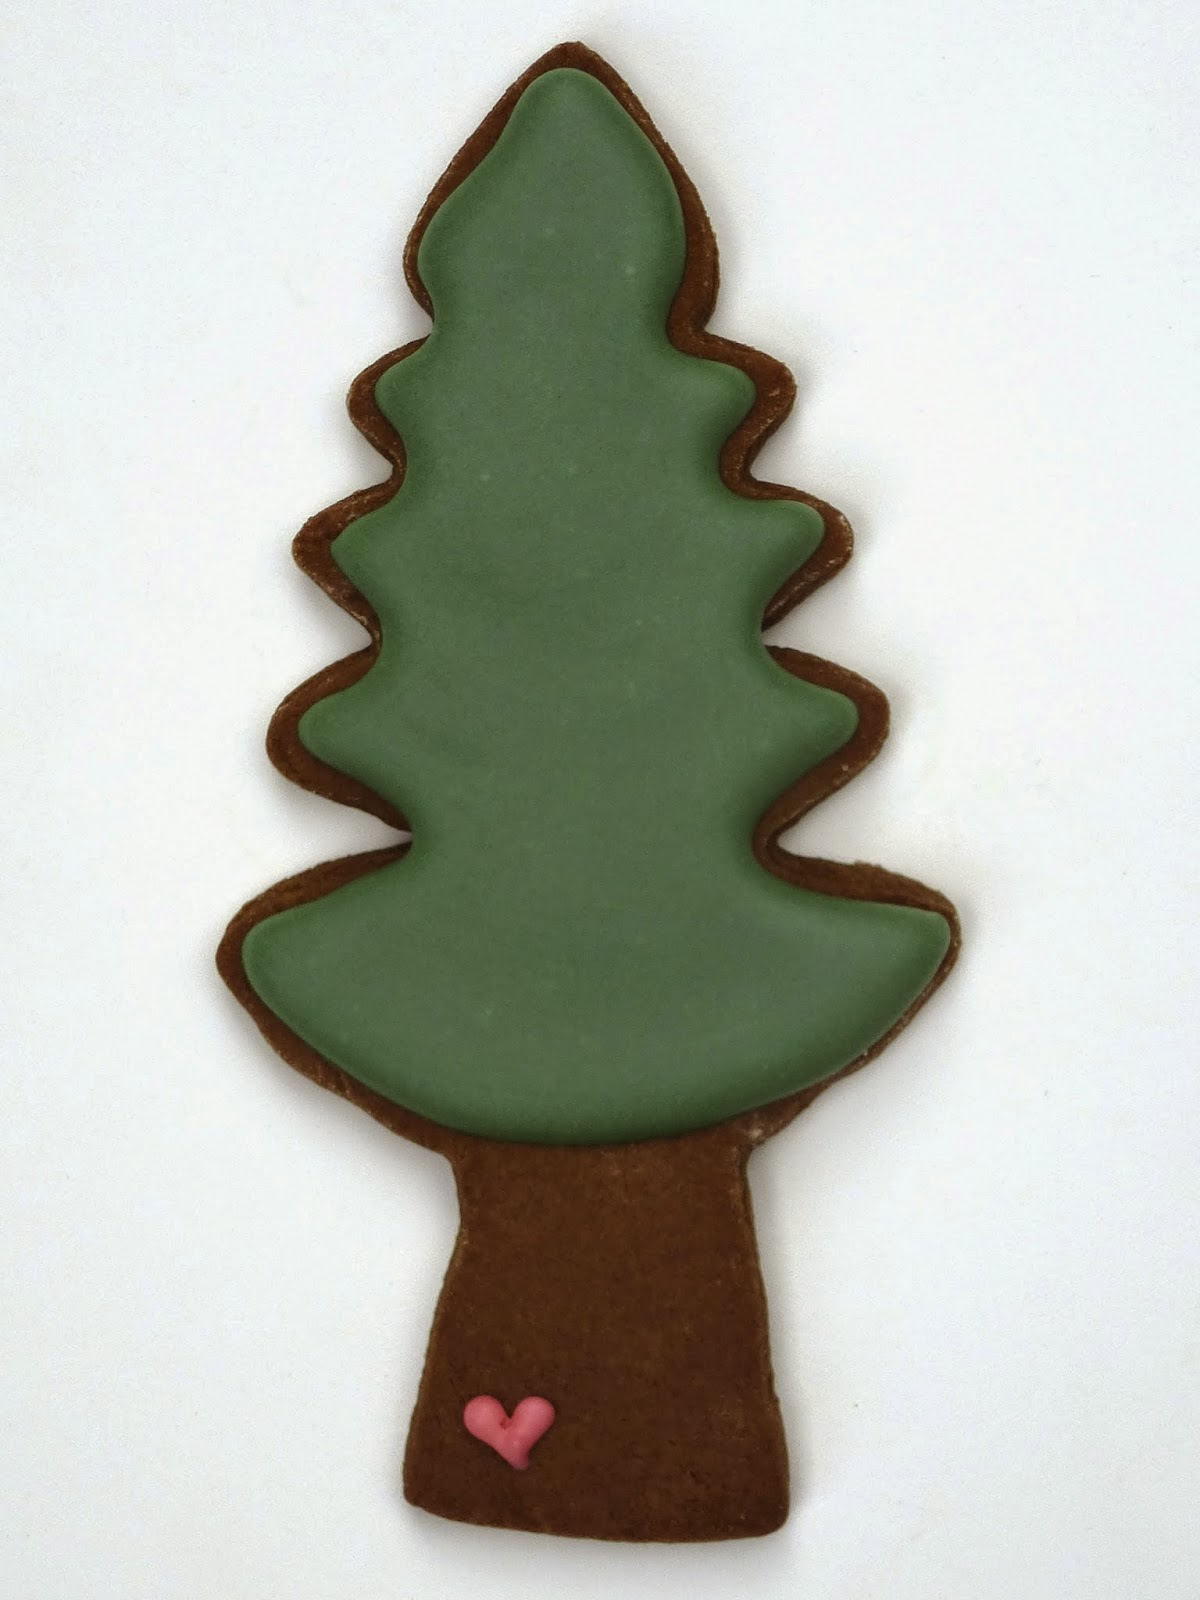 Decorated Tree Cookie with Heart on Trunk